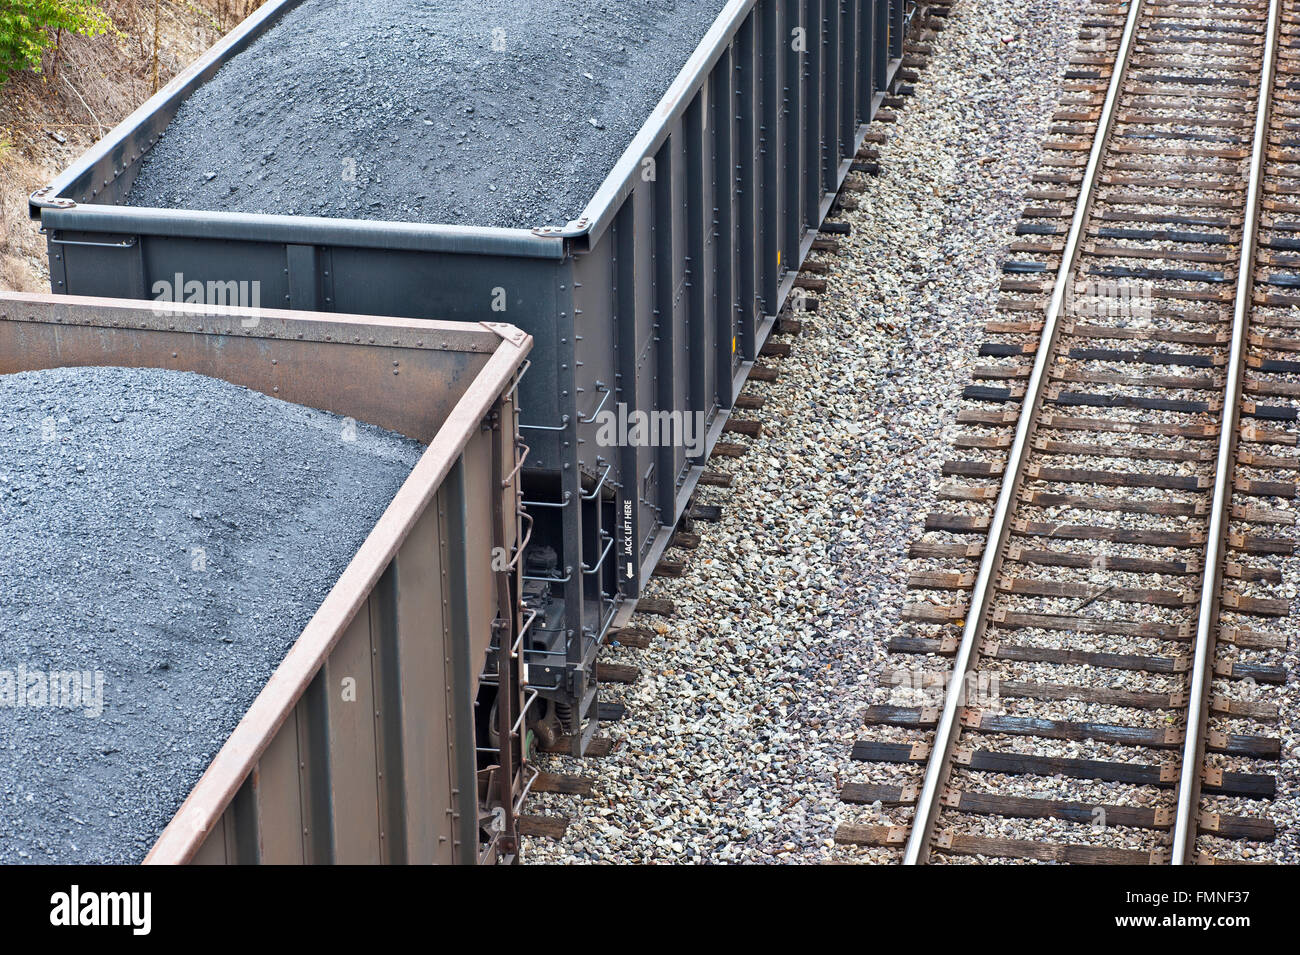 Train Cars Loaded With Coal Next to More Tracks - Stock Image